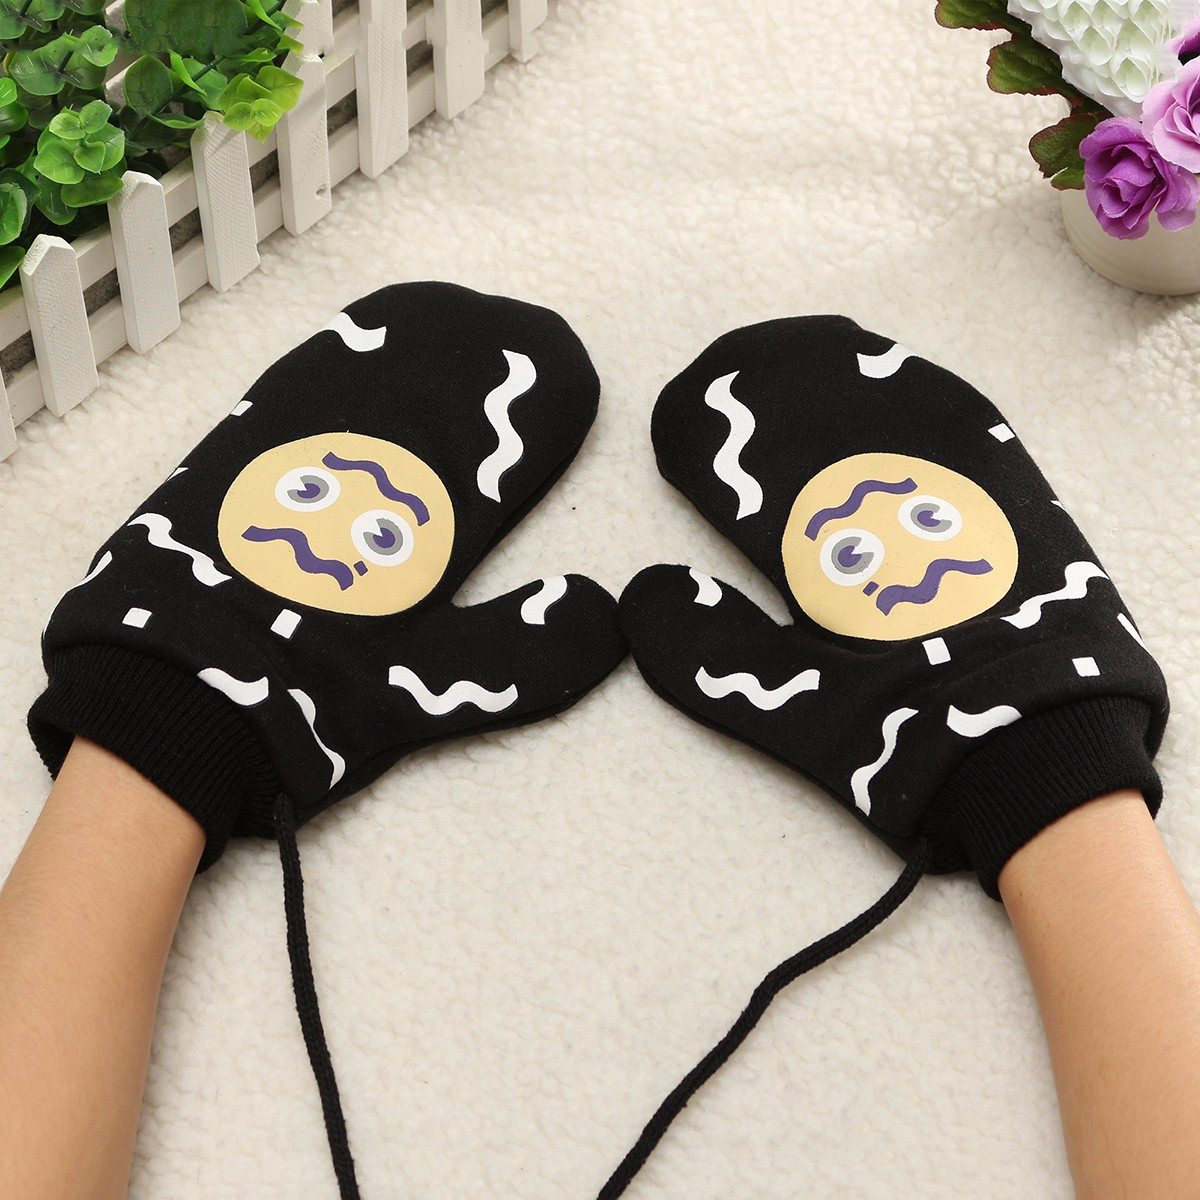 Women Girl Cotton Blend Cute Cartoon Pattern Gloves Full Finger Fleece Lining Mittens With Rope